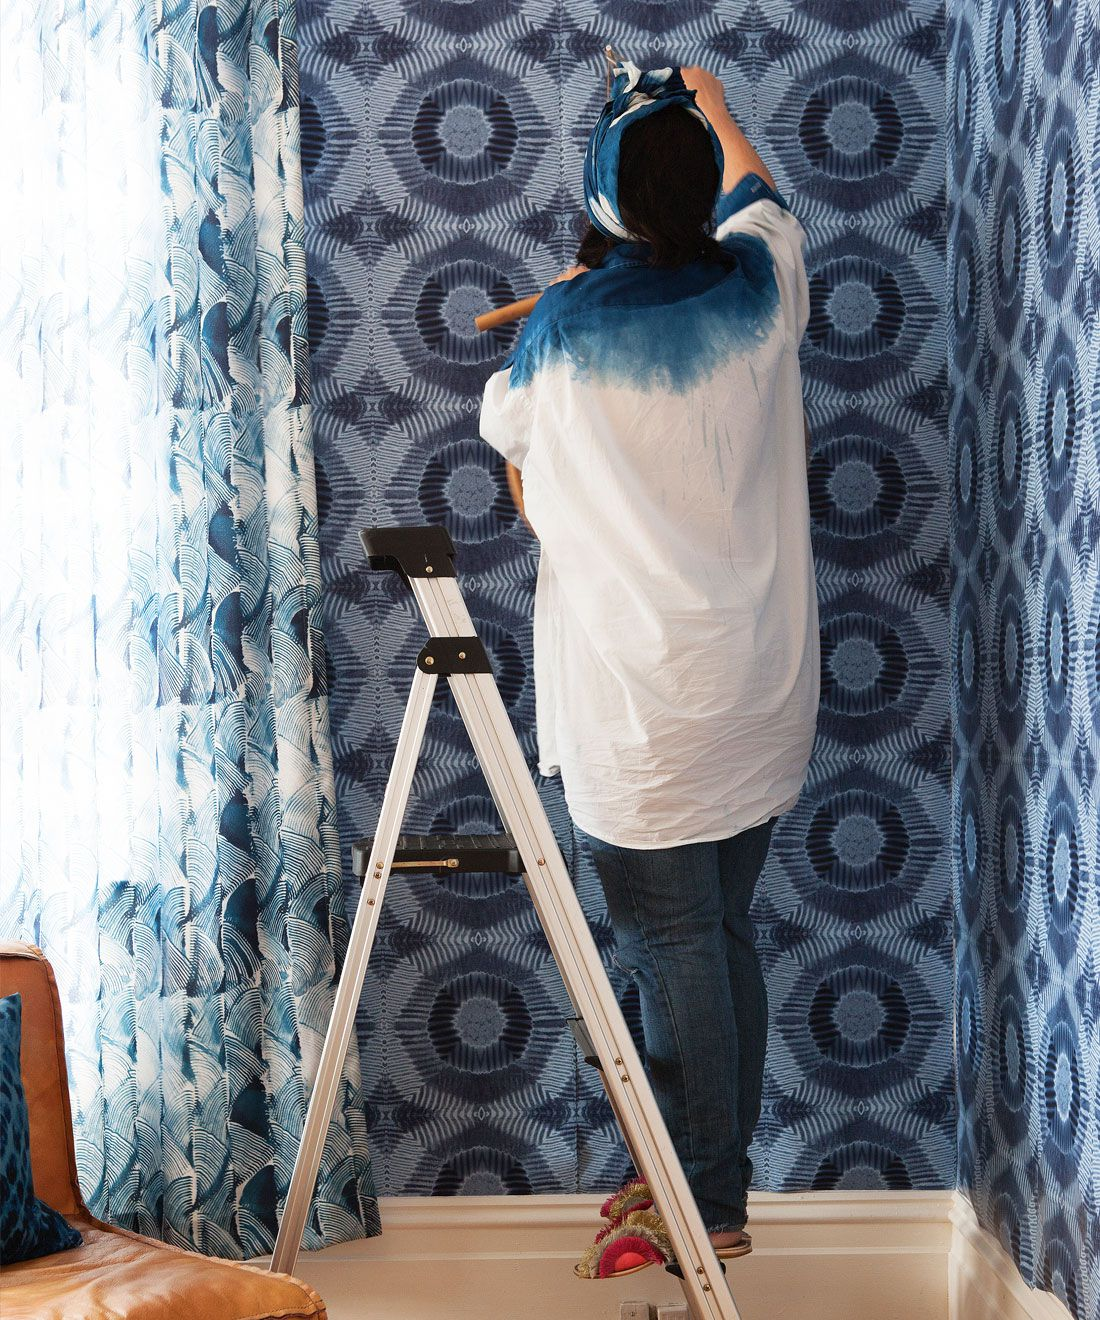 Aztec Suns Wallpaper Indigo Blue • Shibori Geometric • Wallpaper Installation